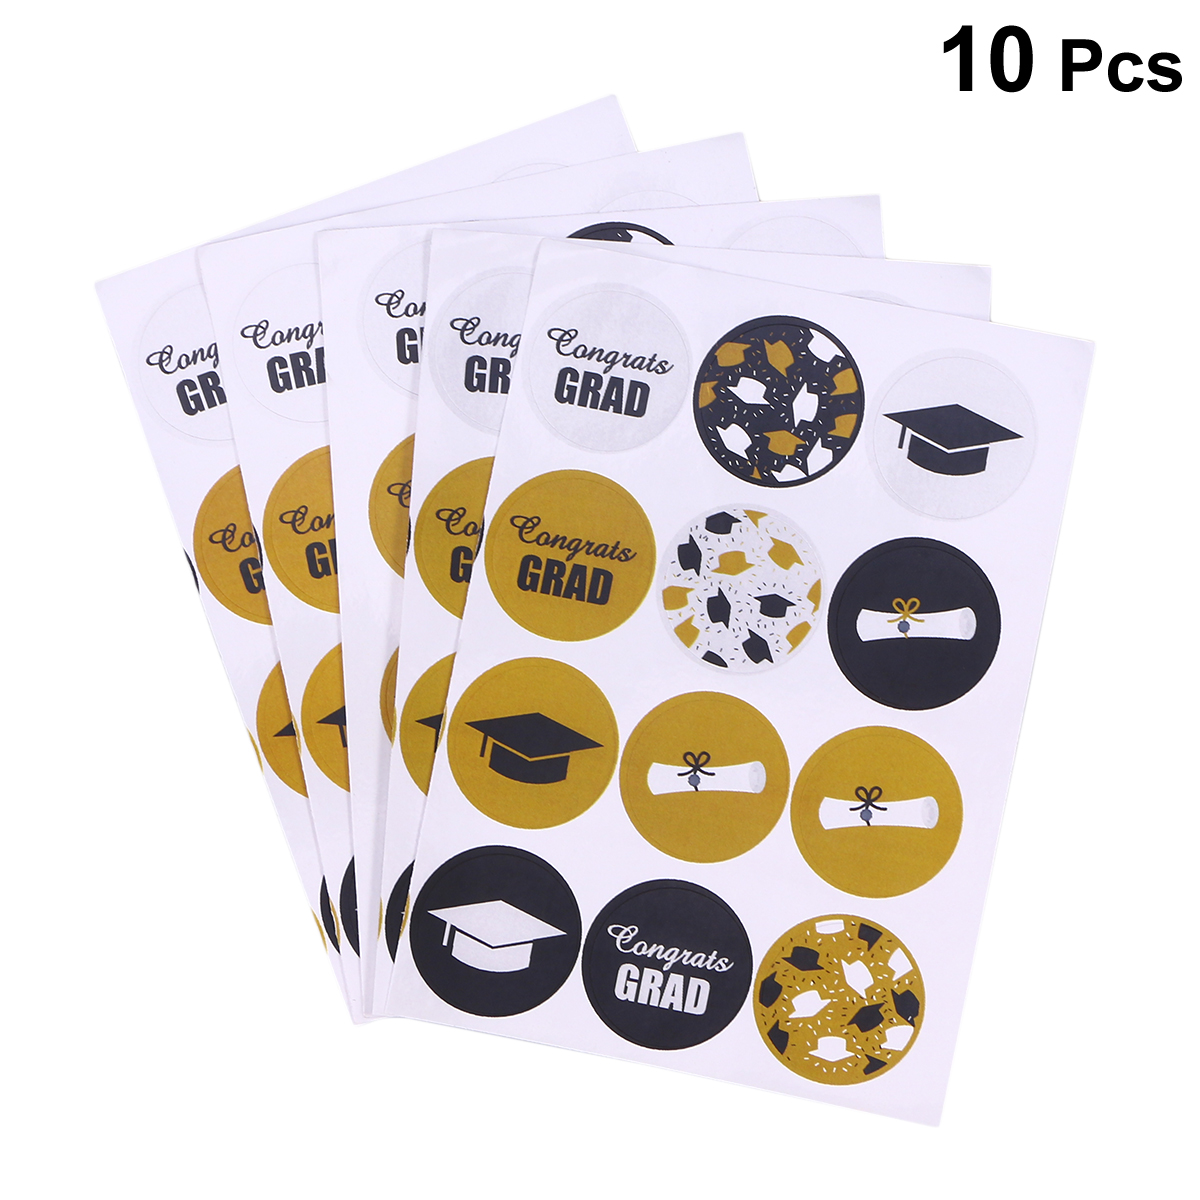 10sheets/Pack Round Labels Graduation Theme Patterned Sealing Stickers Handmade Roll Decals For Certificate Decor